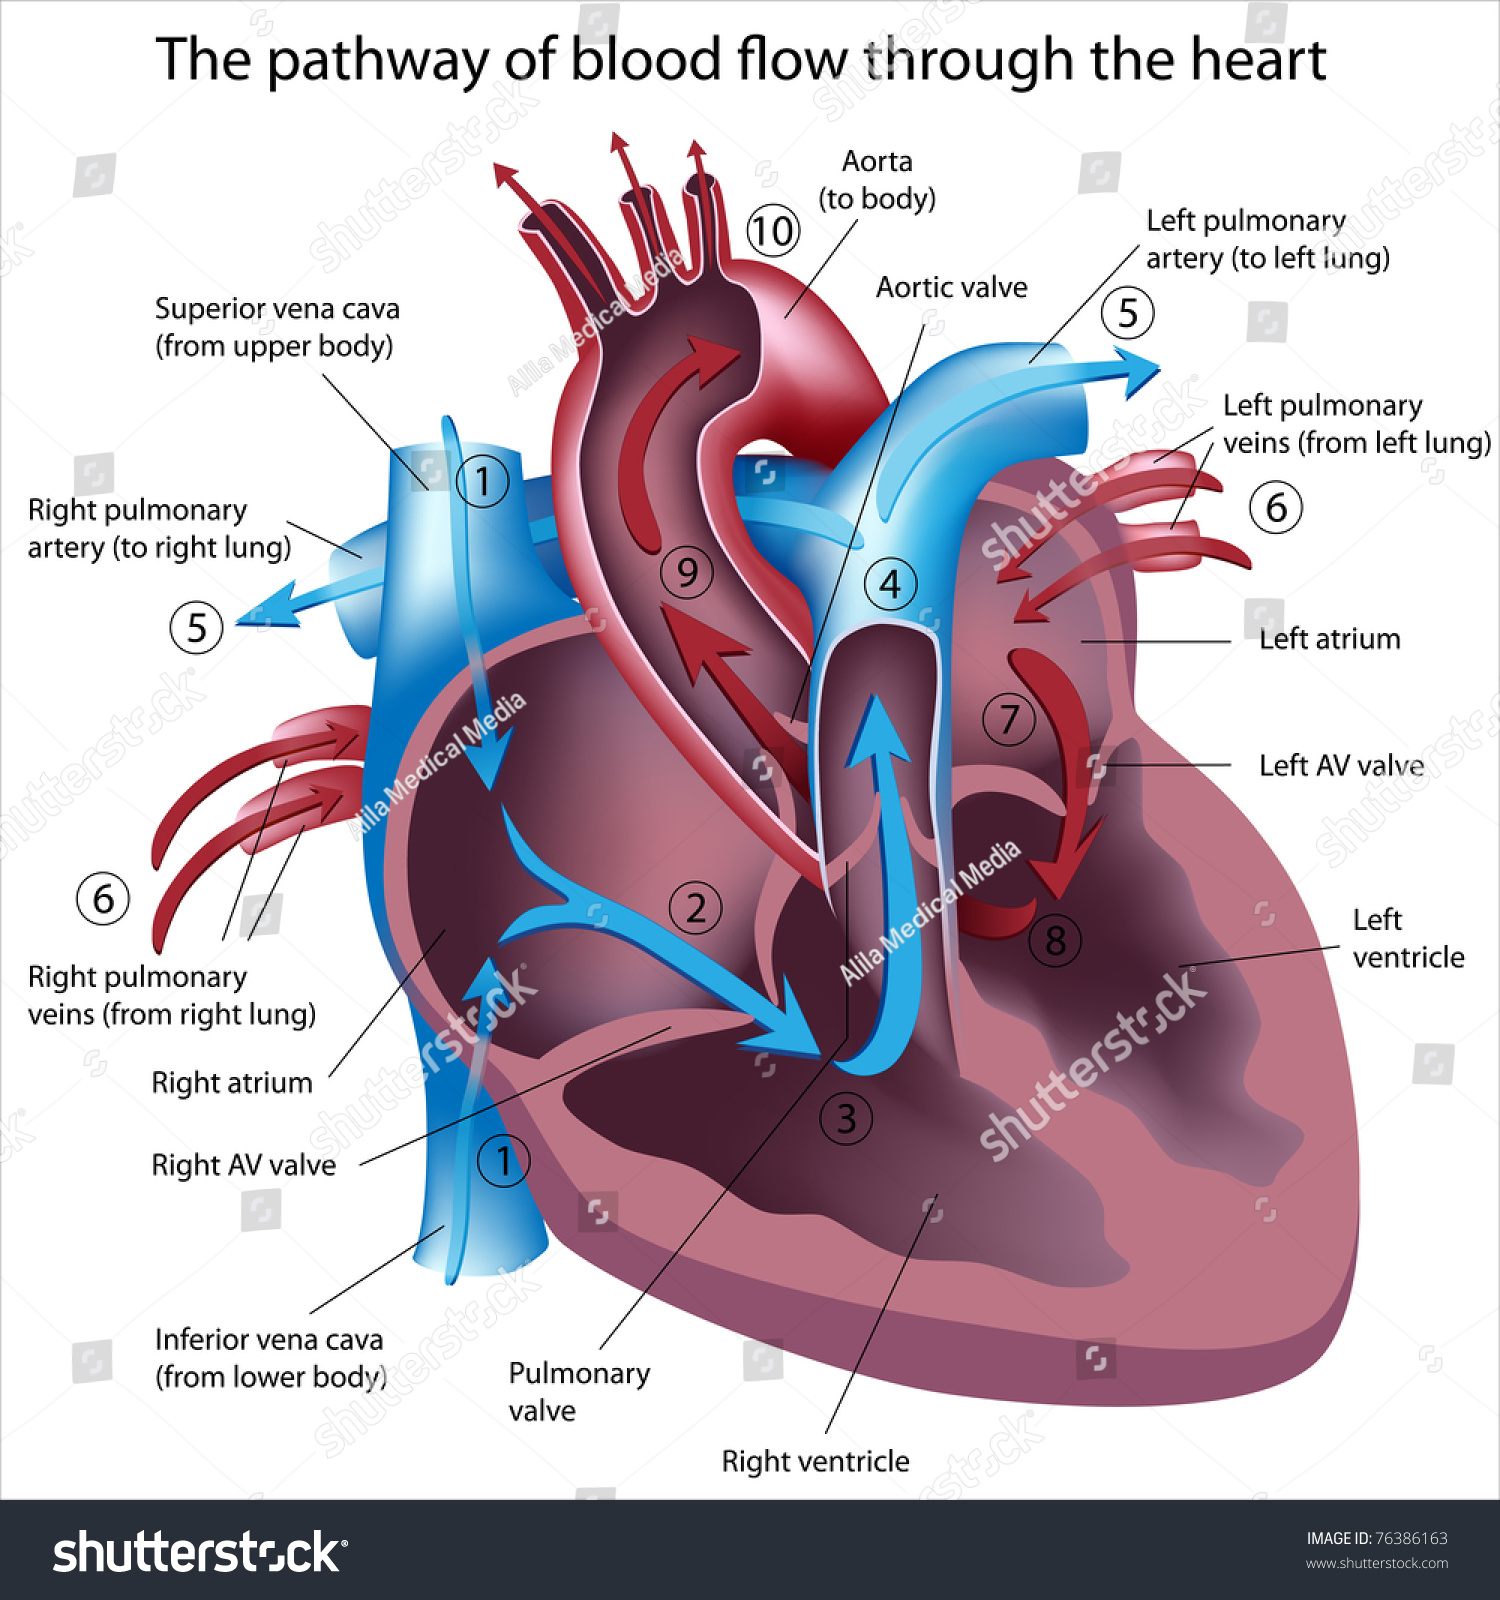 pathway of blood flow through the heart stock photo      pathway of blood flow through the heart preview  save to a lightbox